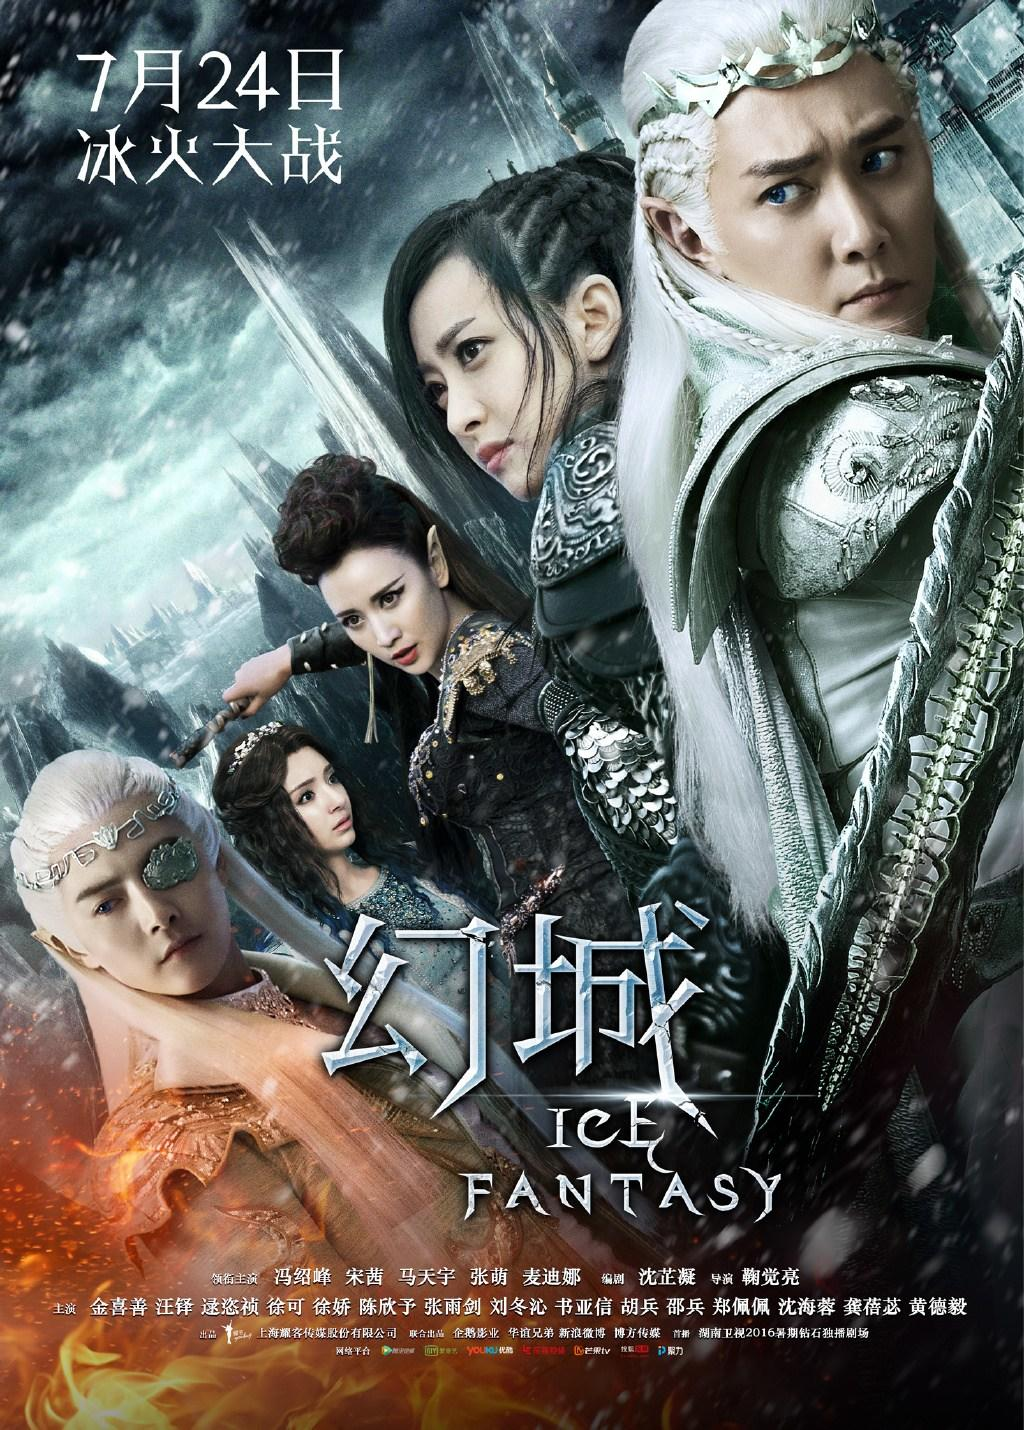 Every single fantasy archetype in one drama